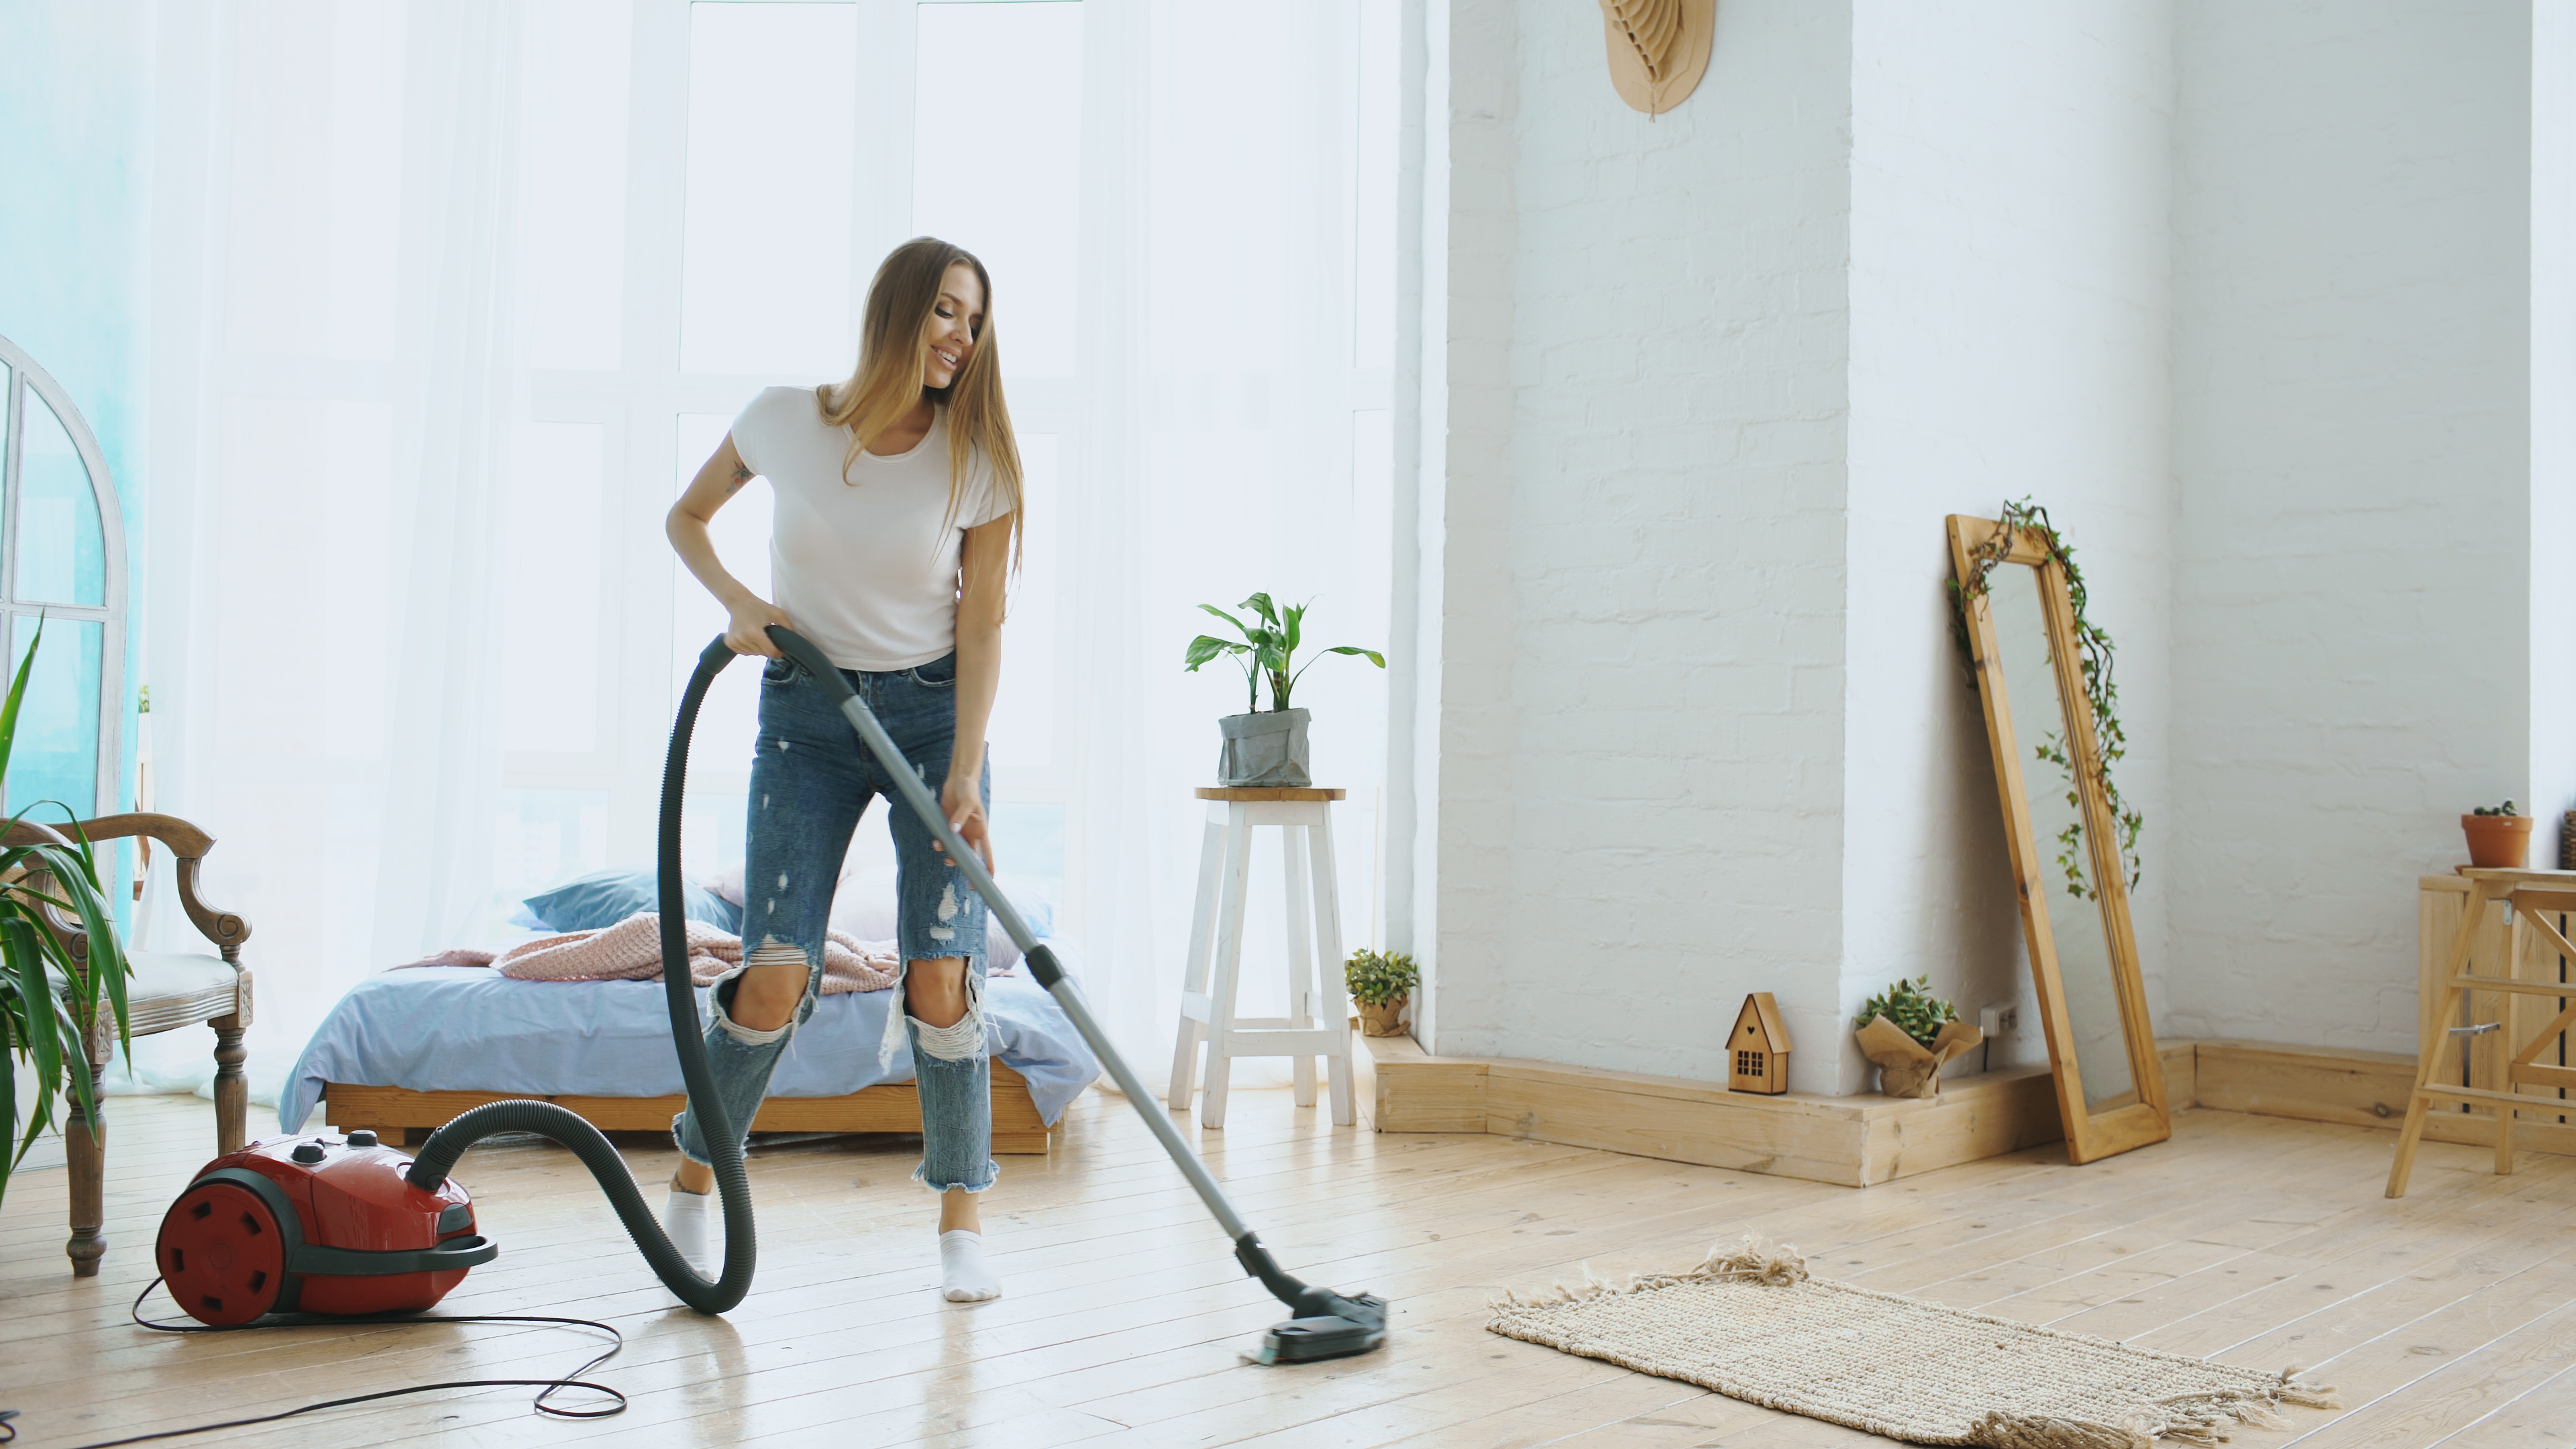 What Are the Causes of Vacuums Losing Suction? | Home Guides